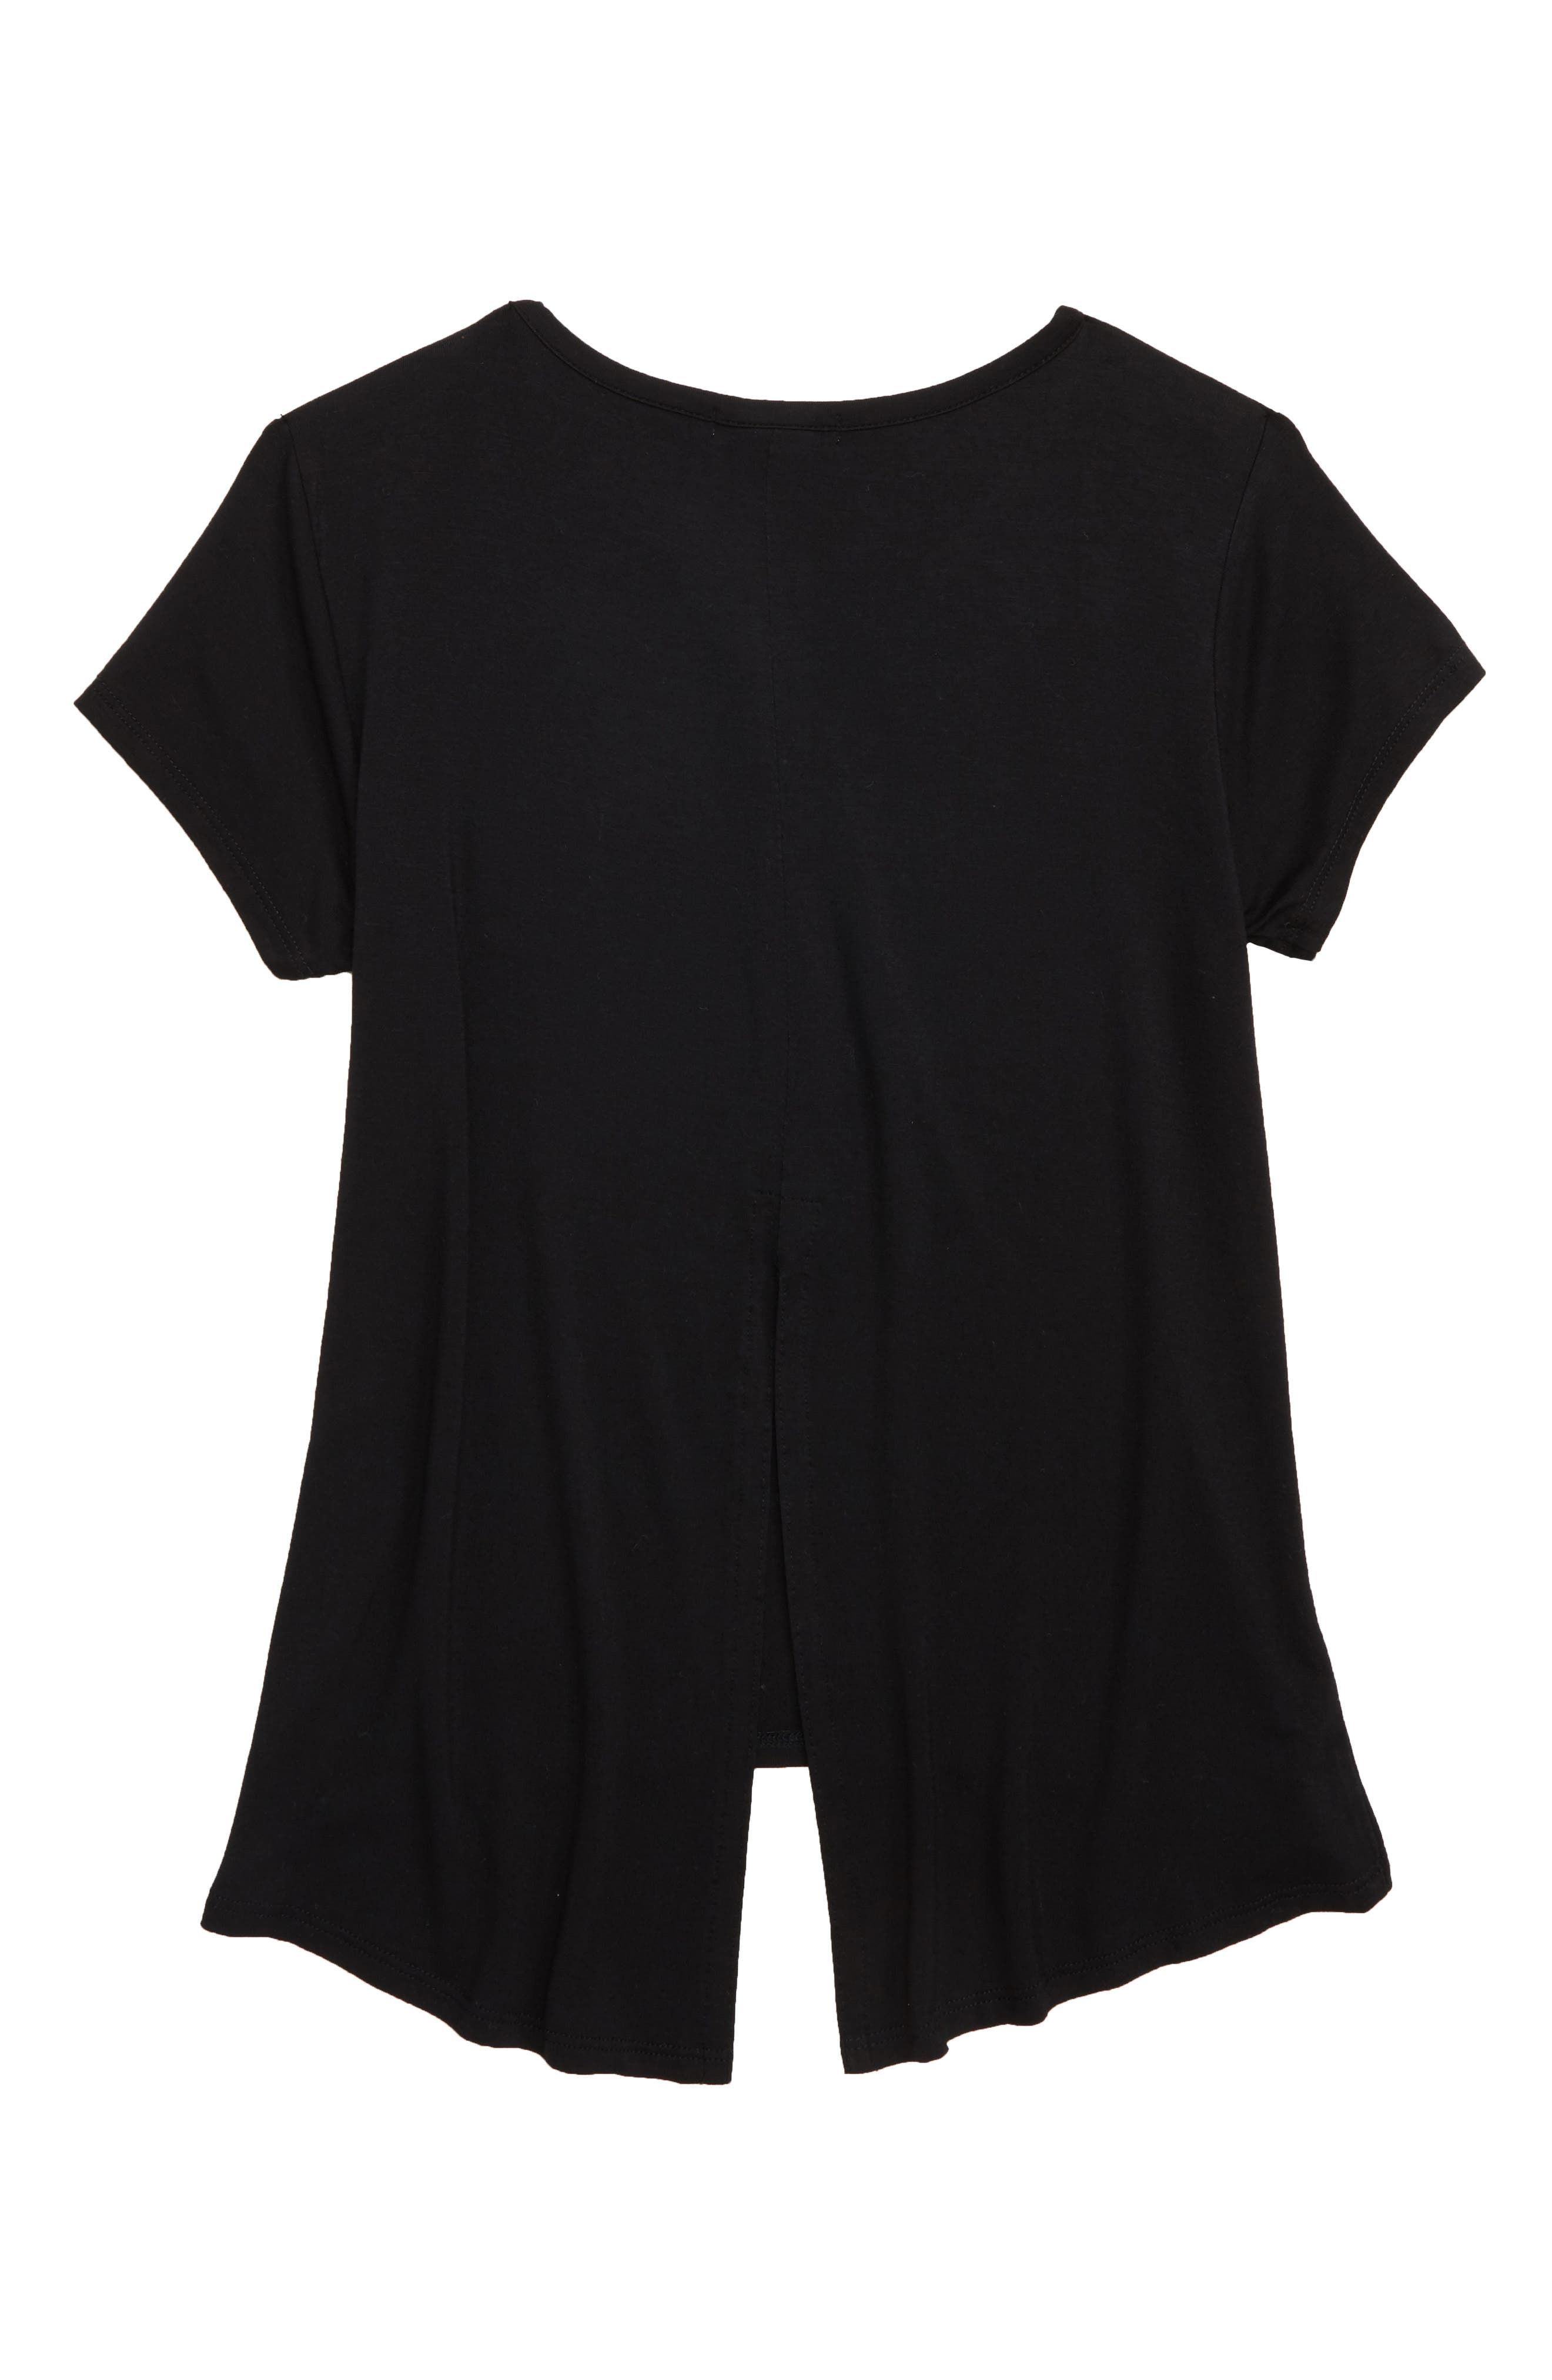 'Living' Graphic Envelope Back Tee,                             Alternate thumbnail 17, color,